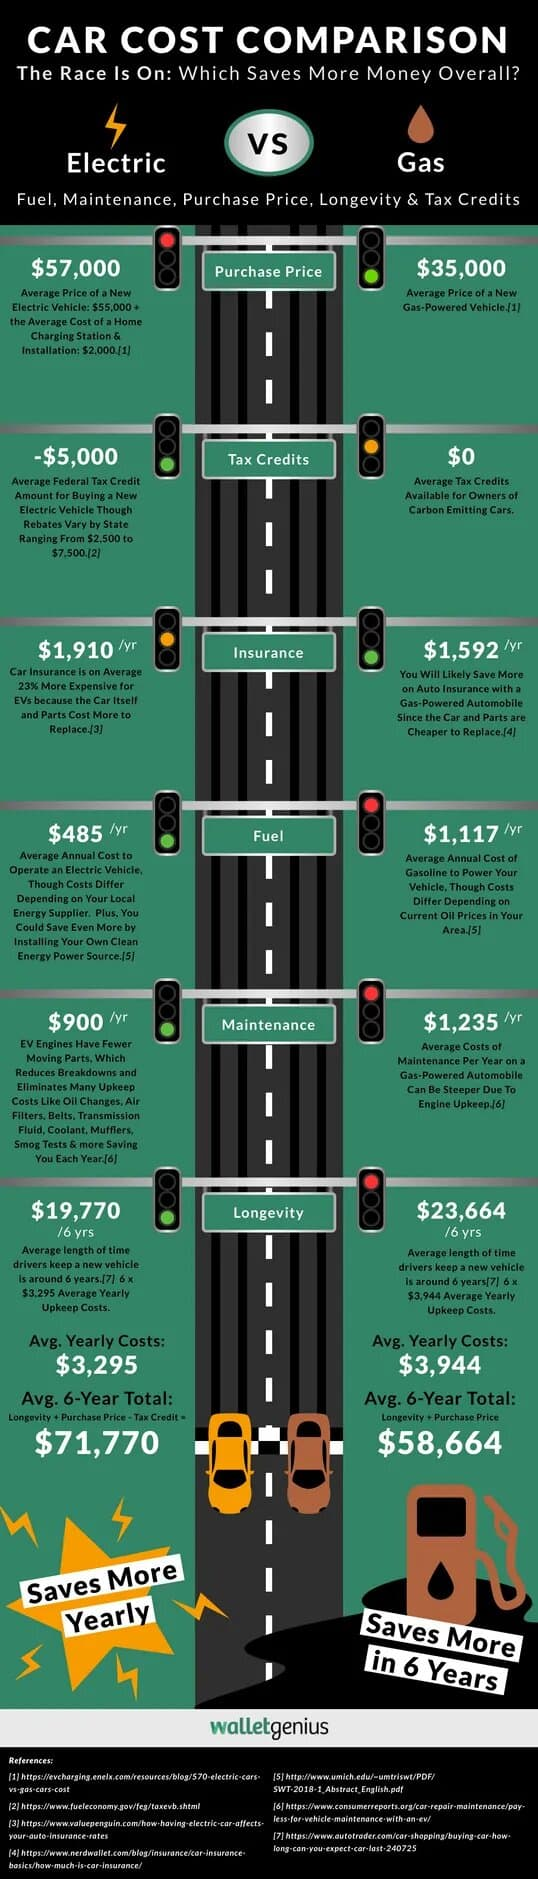 Electric Car vs Gas Costs Which Truly Saves You The Most Money